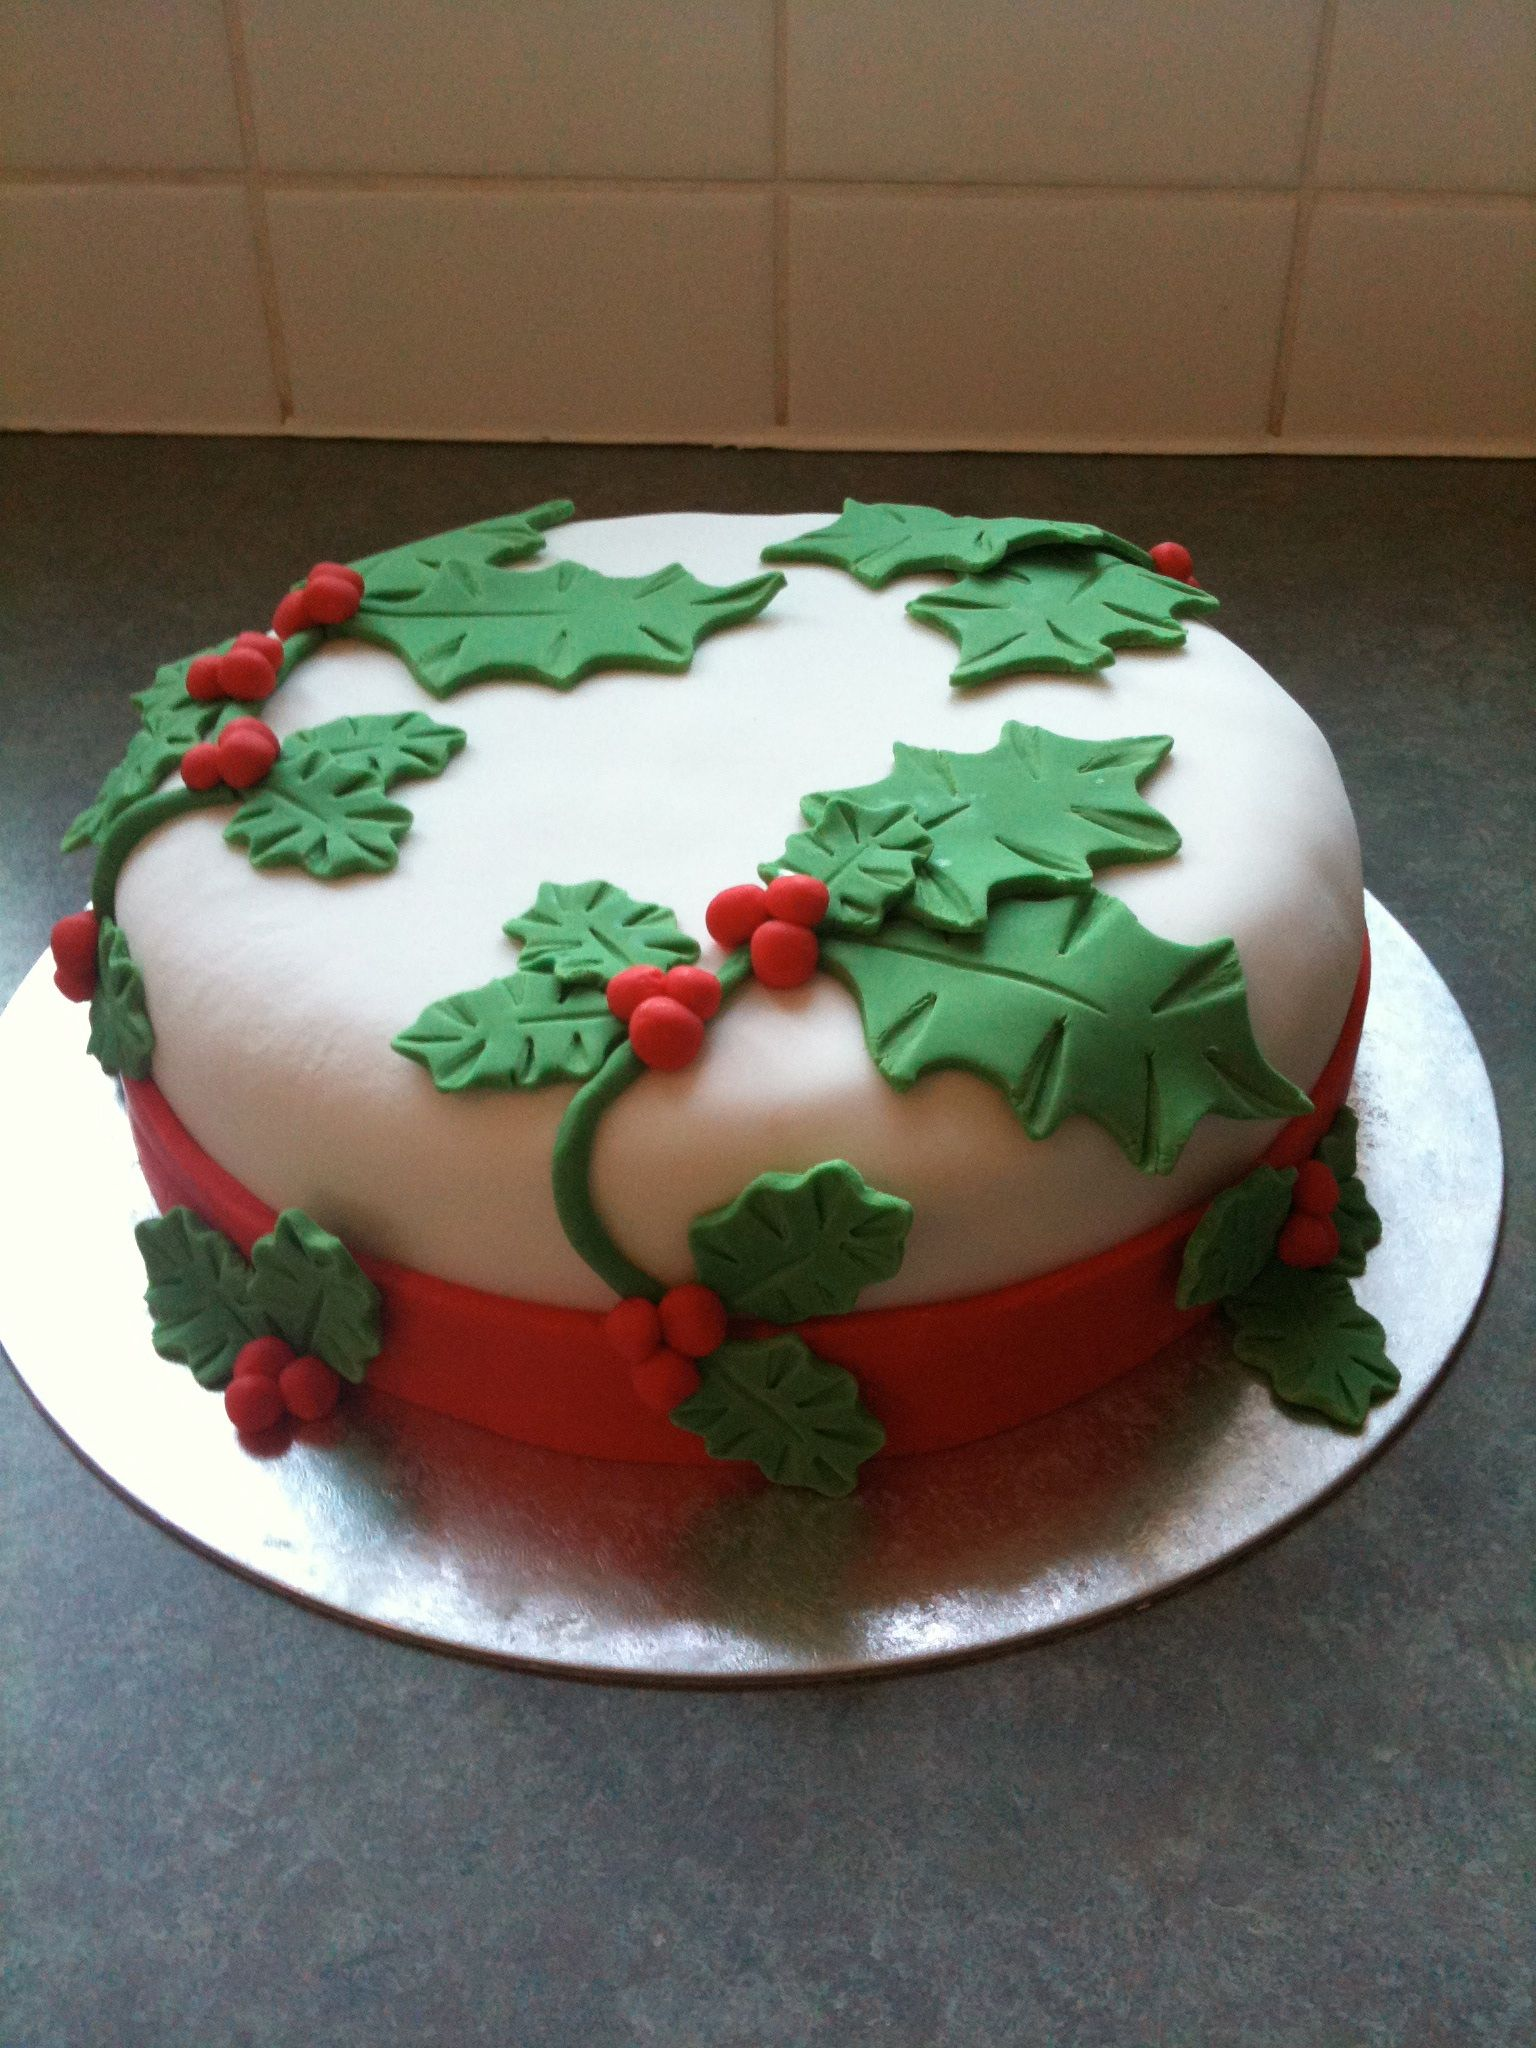 First Christmas cake design, simple holly leaf design